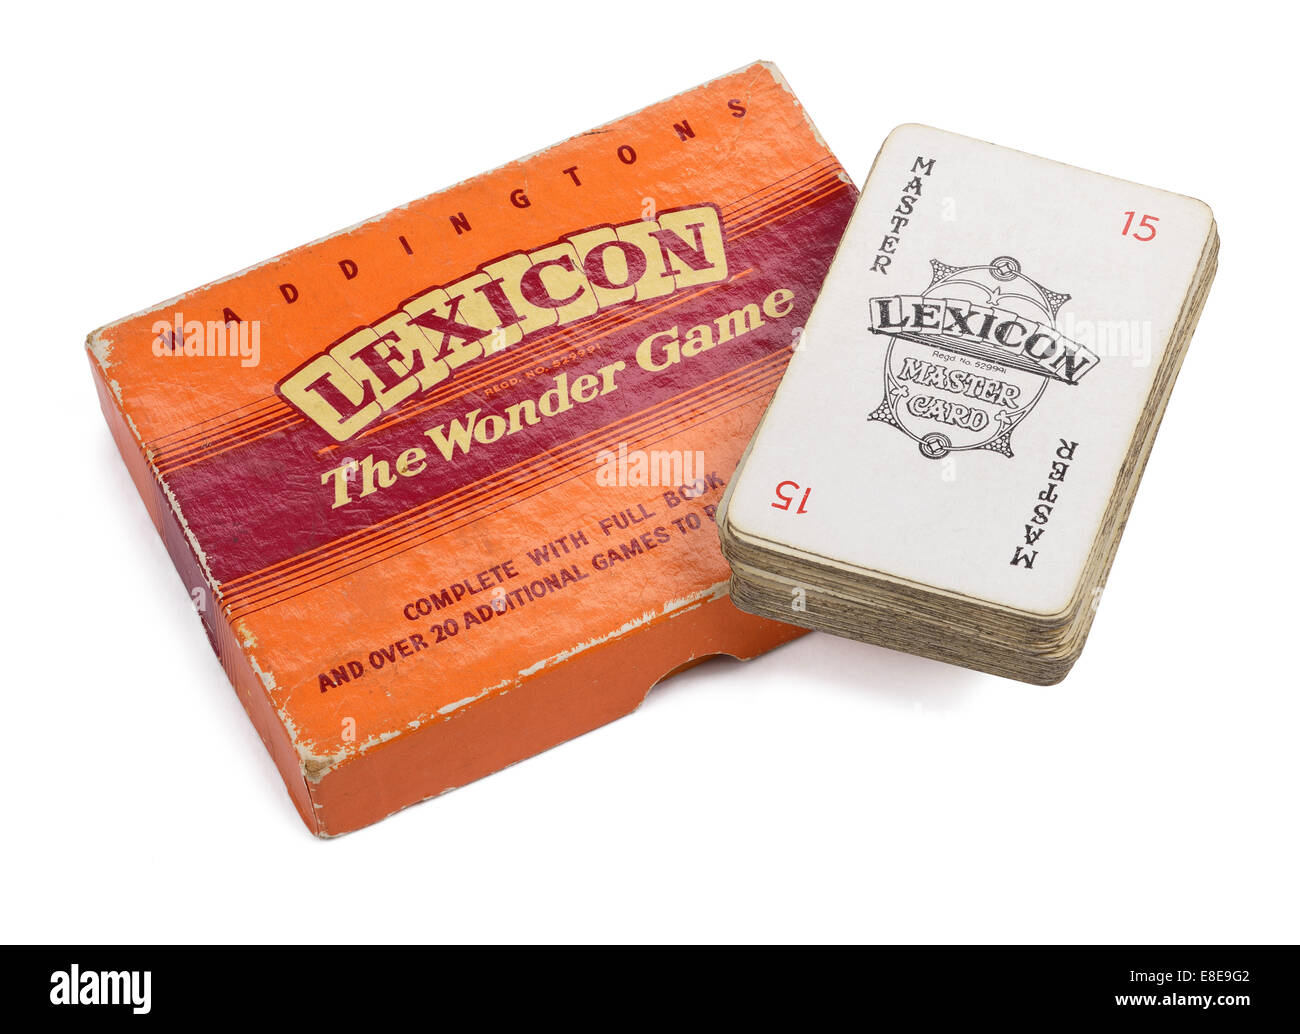 Vintage retro Lexicon card game box and cards - Stock Image